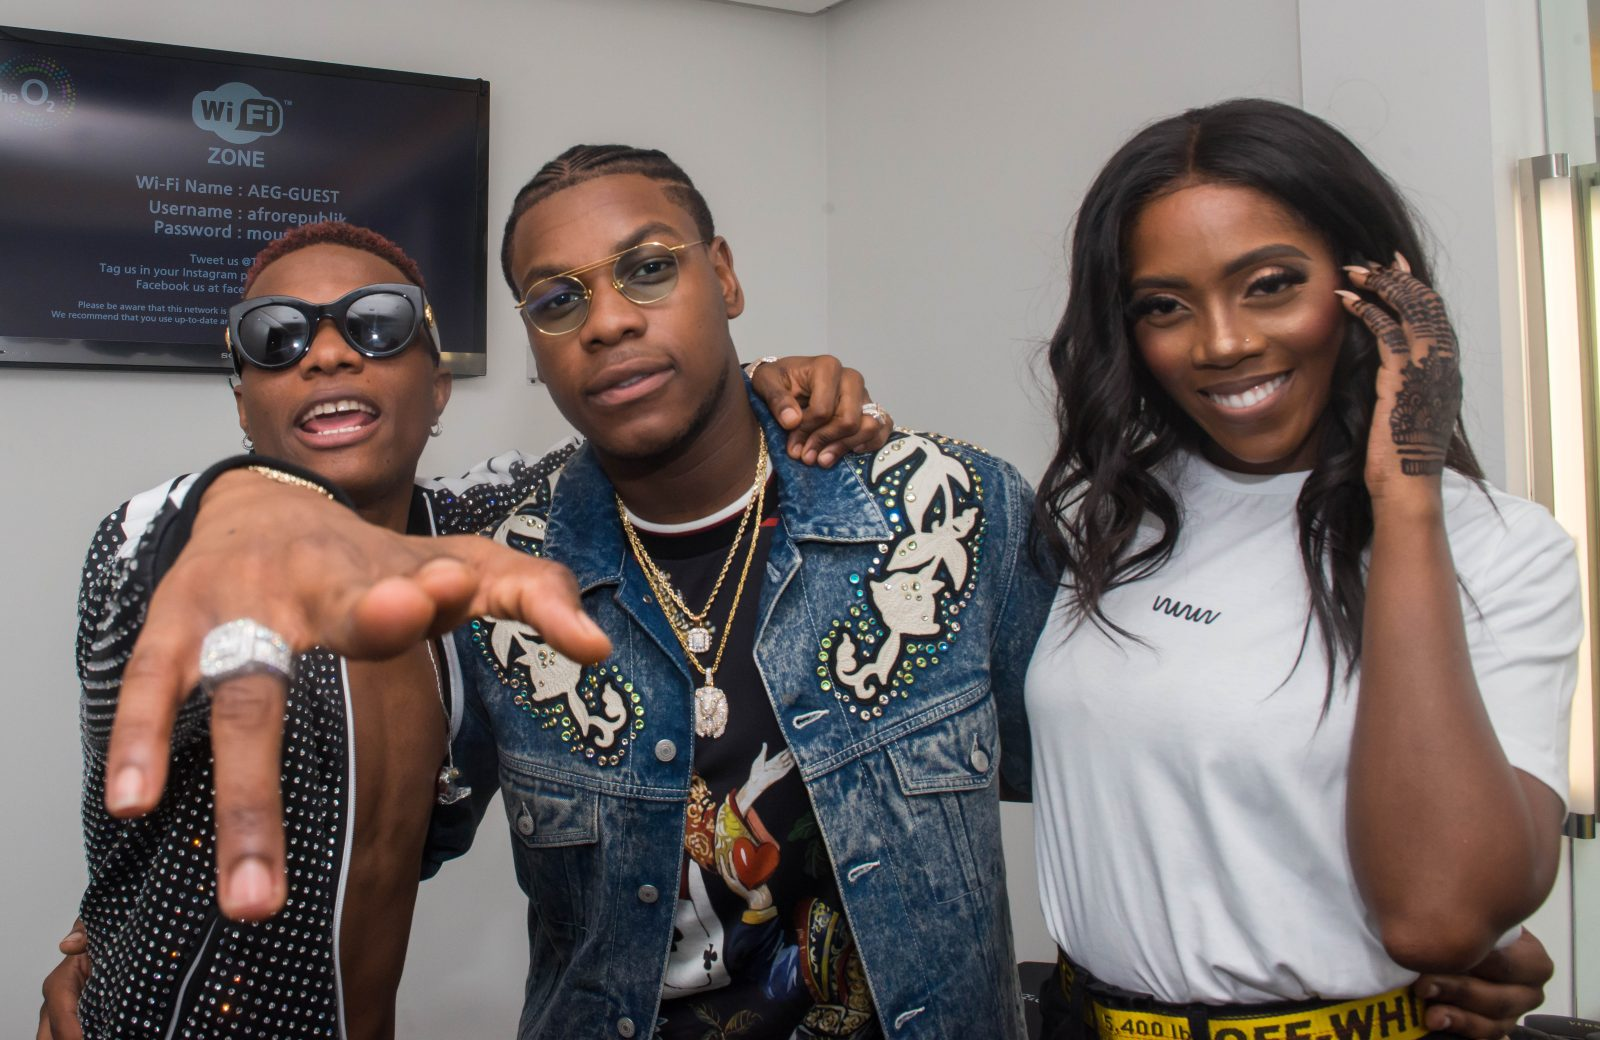 o2 Arena, London, United Kingdom. 26th May 2018.  John Boyega and Tiwa Savage in wizkid's dressing room before his performances on stage during AFROREPUBLIK festival at The O2 Arena. Michael Tubi / Alamy Live News